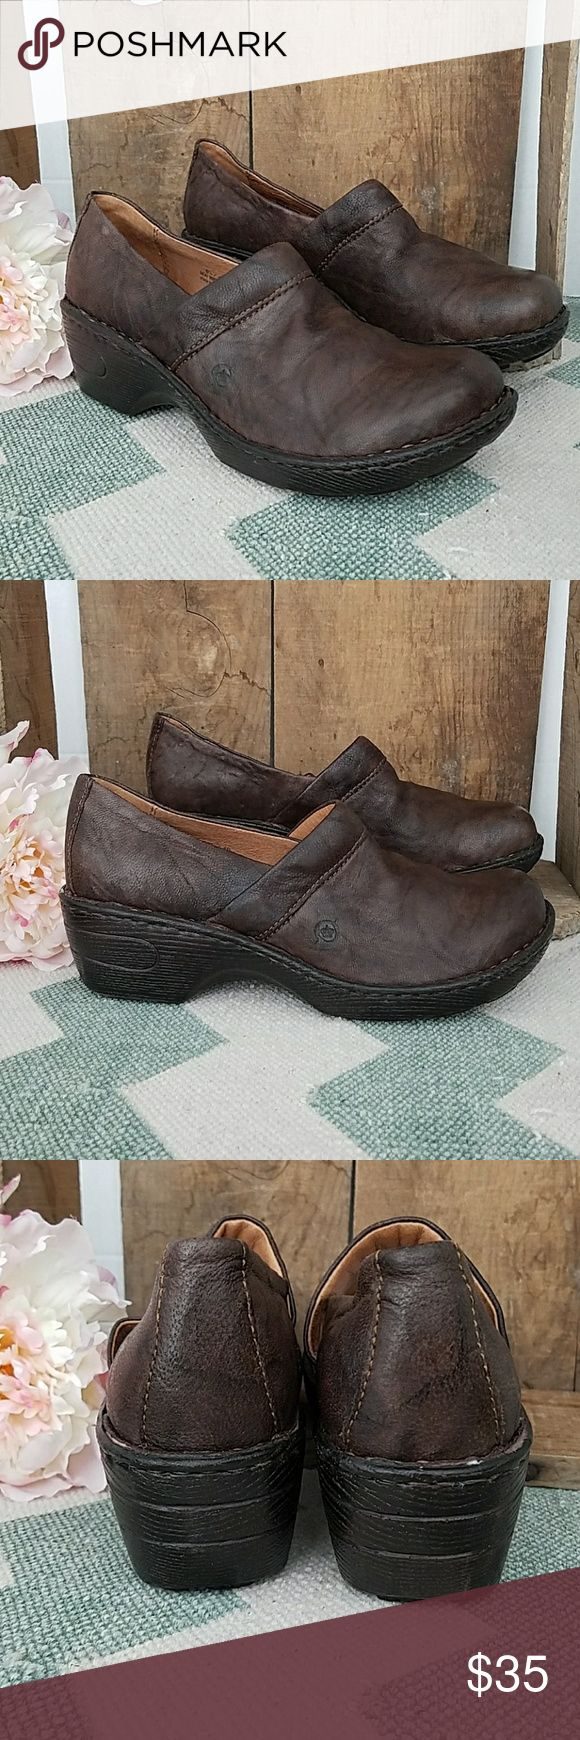 Born Toby II brown leather mule clog size 8.5 Born Toby II brown leather mule clog size 8.5  Don't leave this behind. Add it to your bundle ASAP ♡  Photos are the description of this item. Any flaws will be noted.Otherwise article is in excellent condition. Born Shoes Mules & Clogs